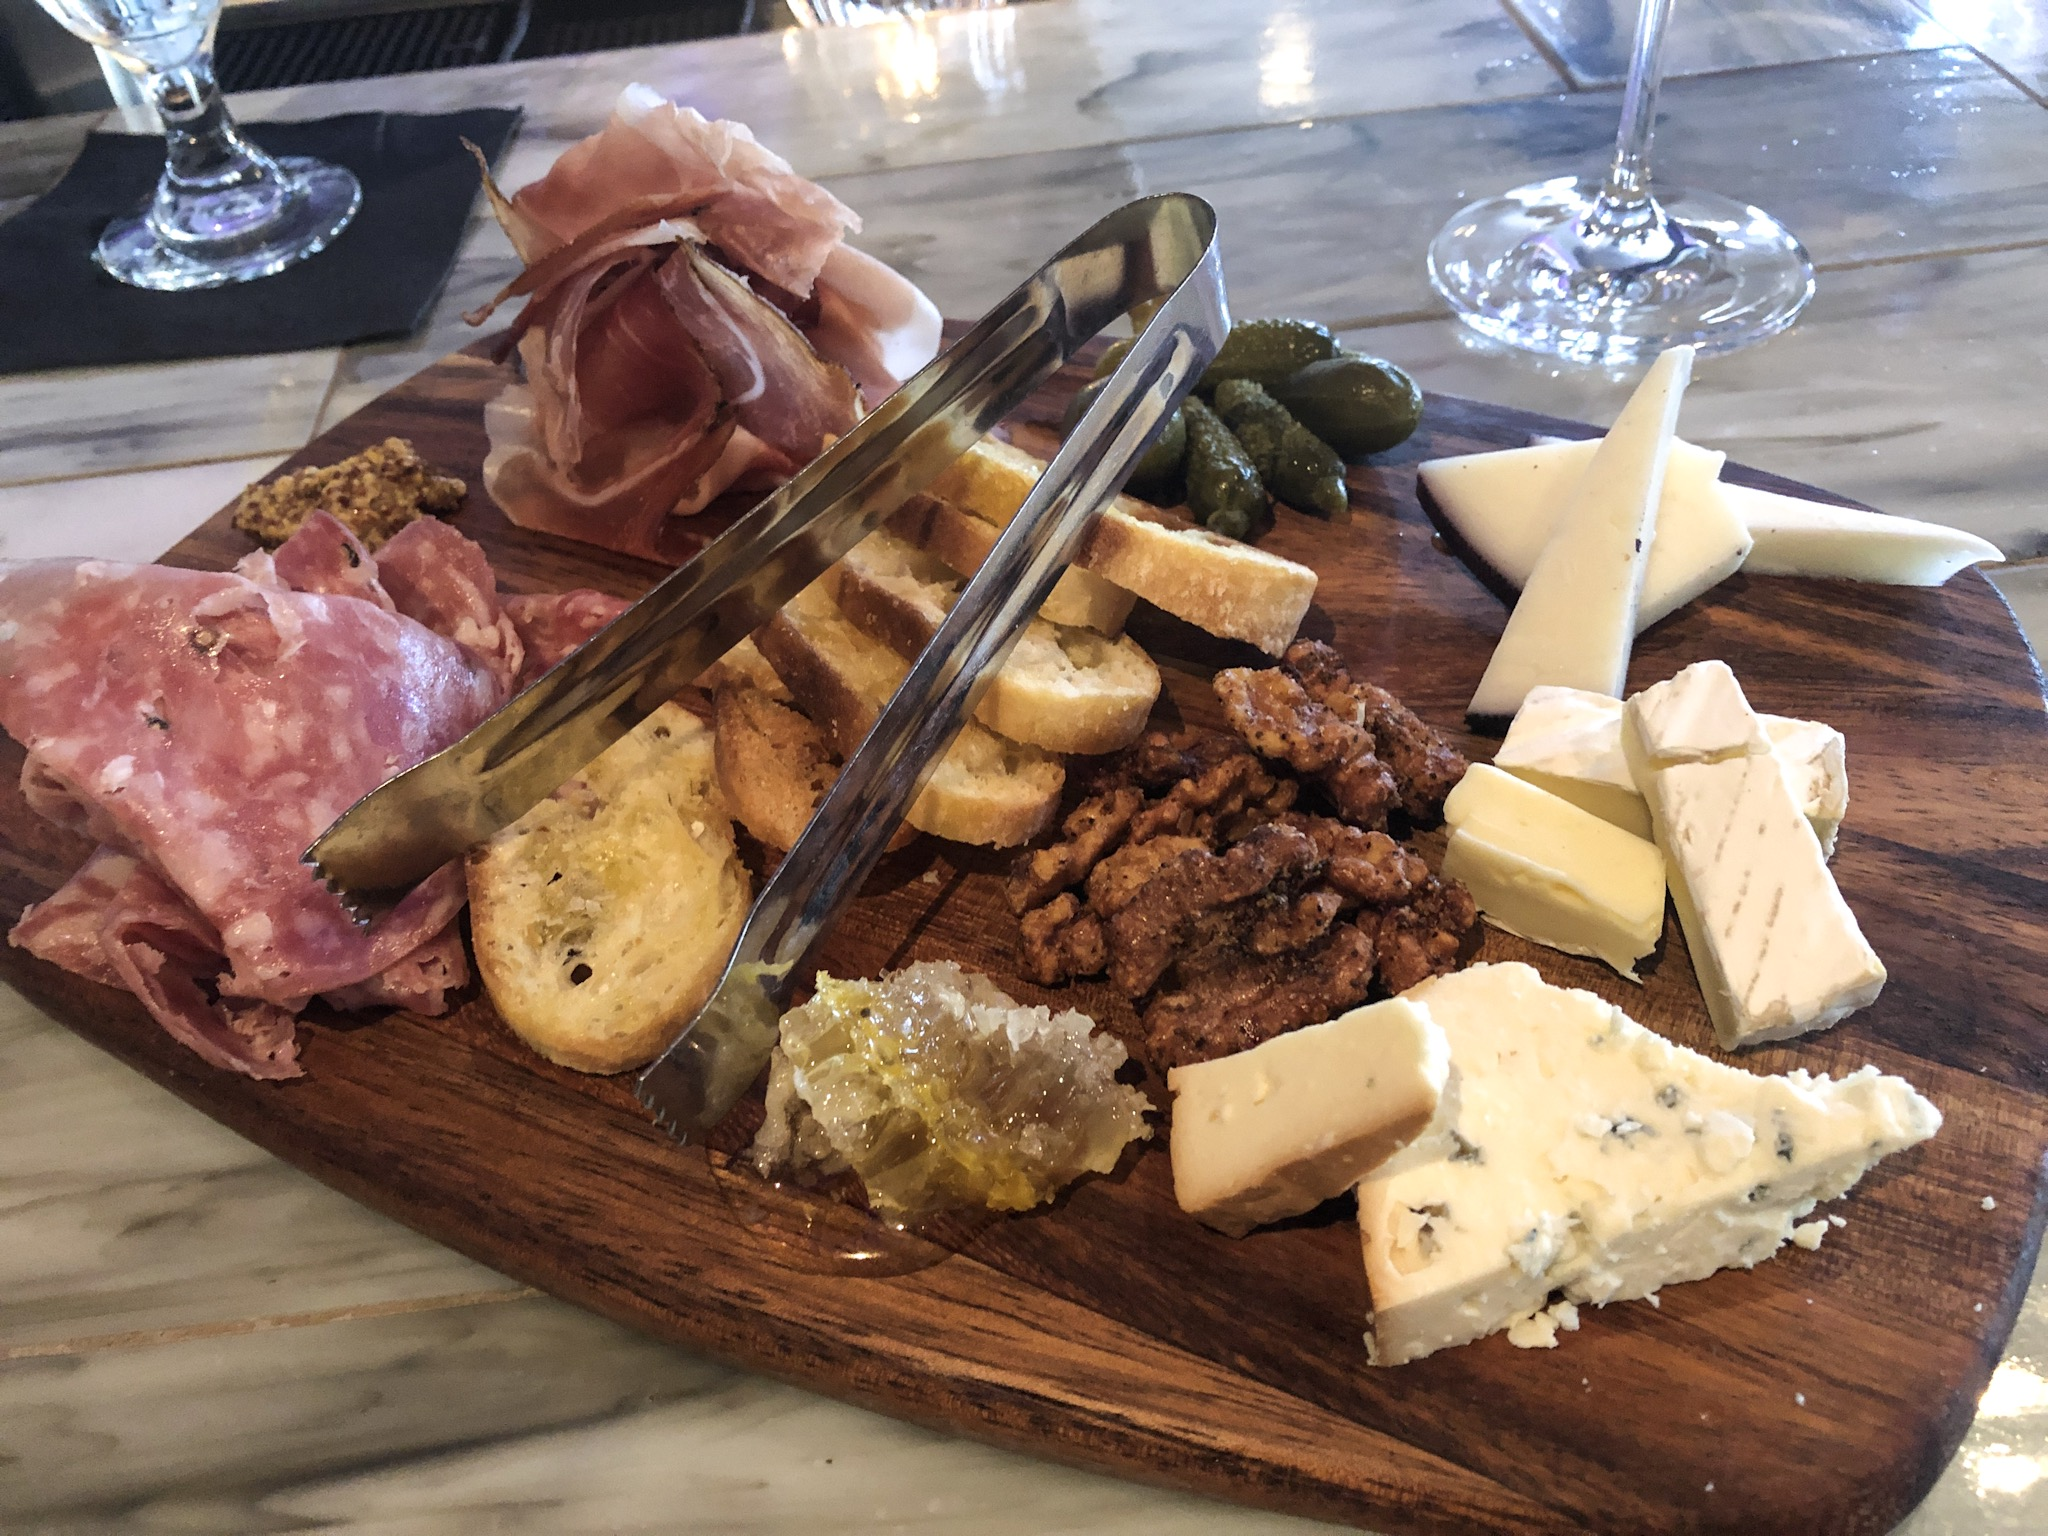 The small Charcuterie Board from Rococo